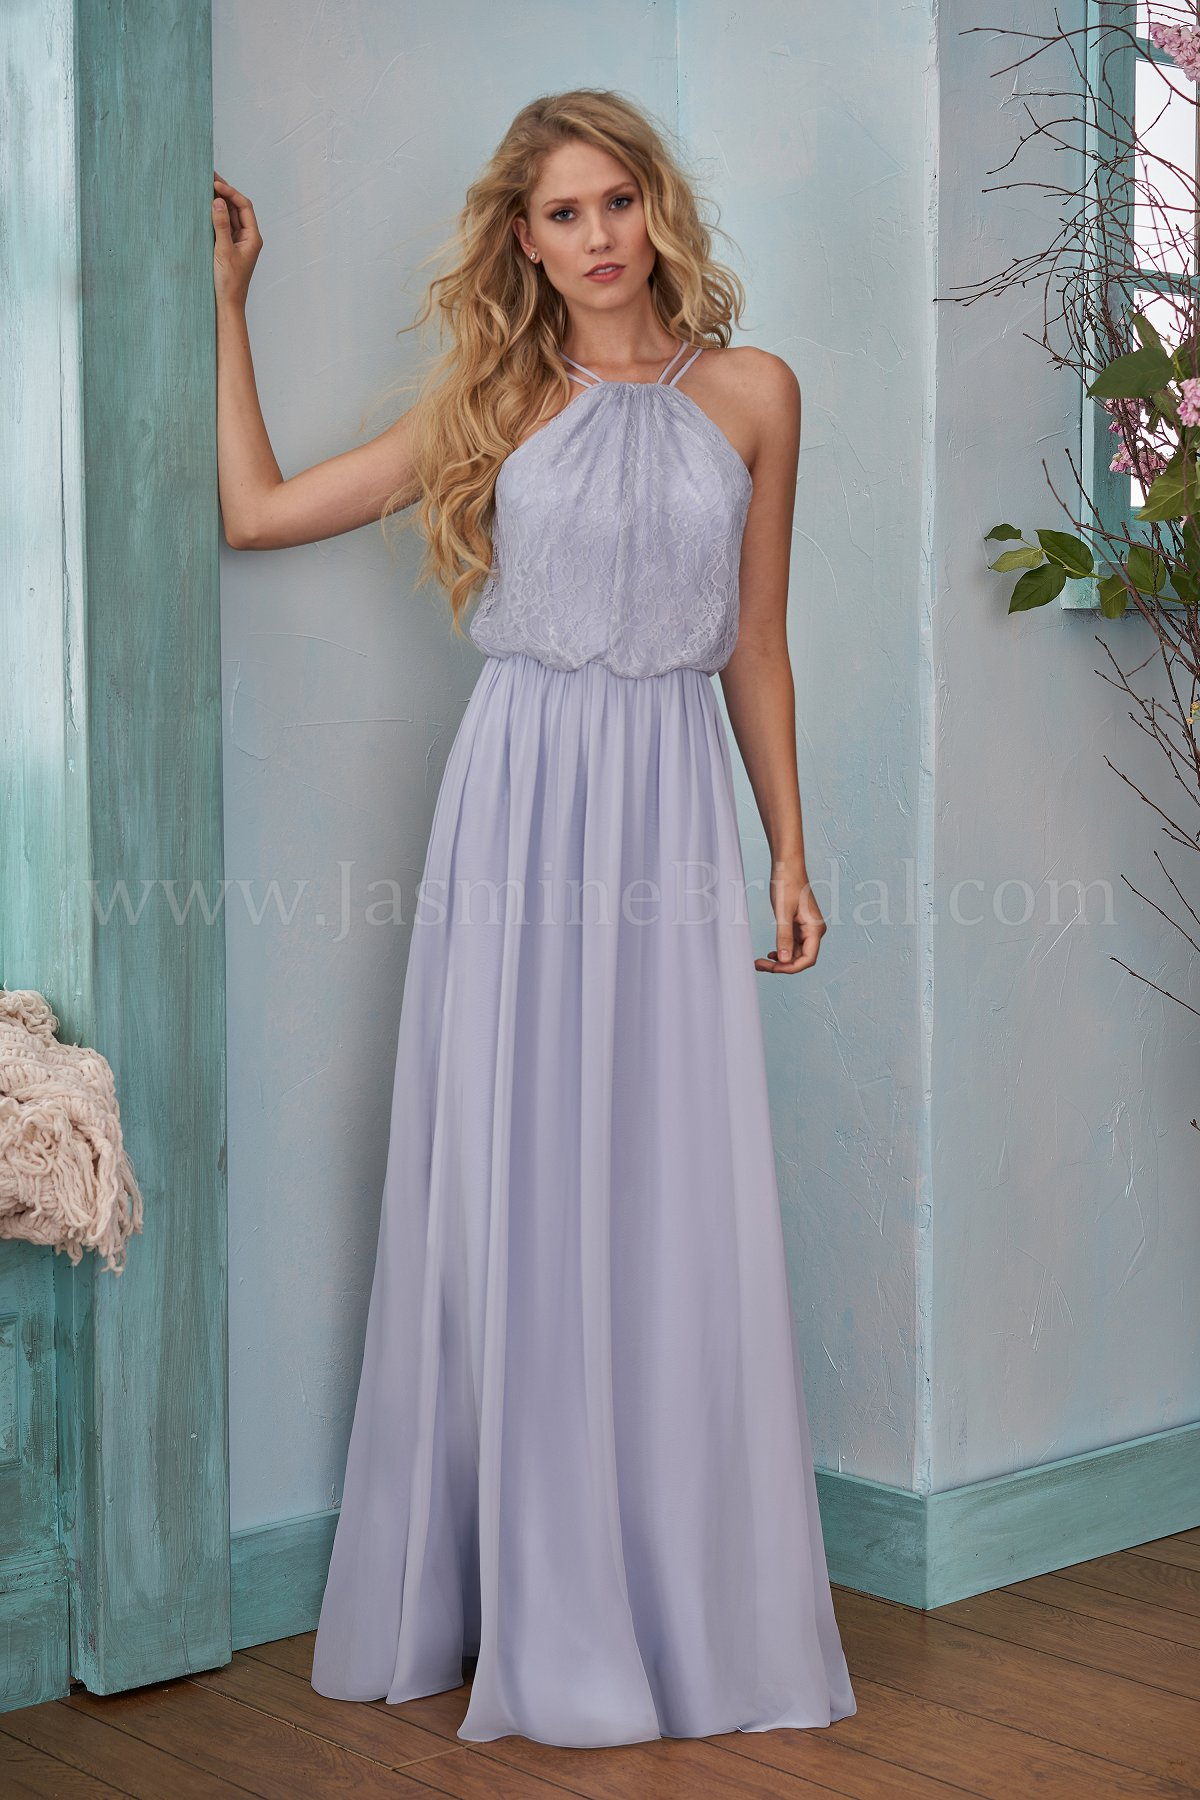 bridesmaid-dresses-B203006-F